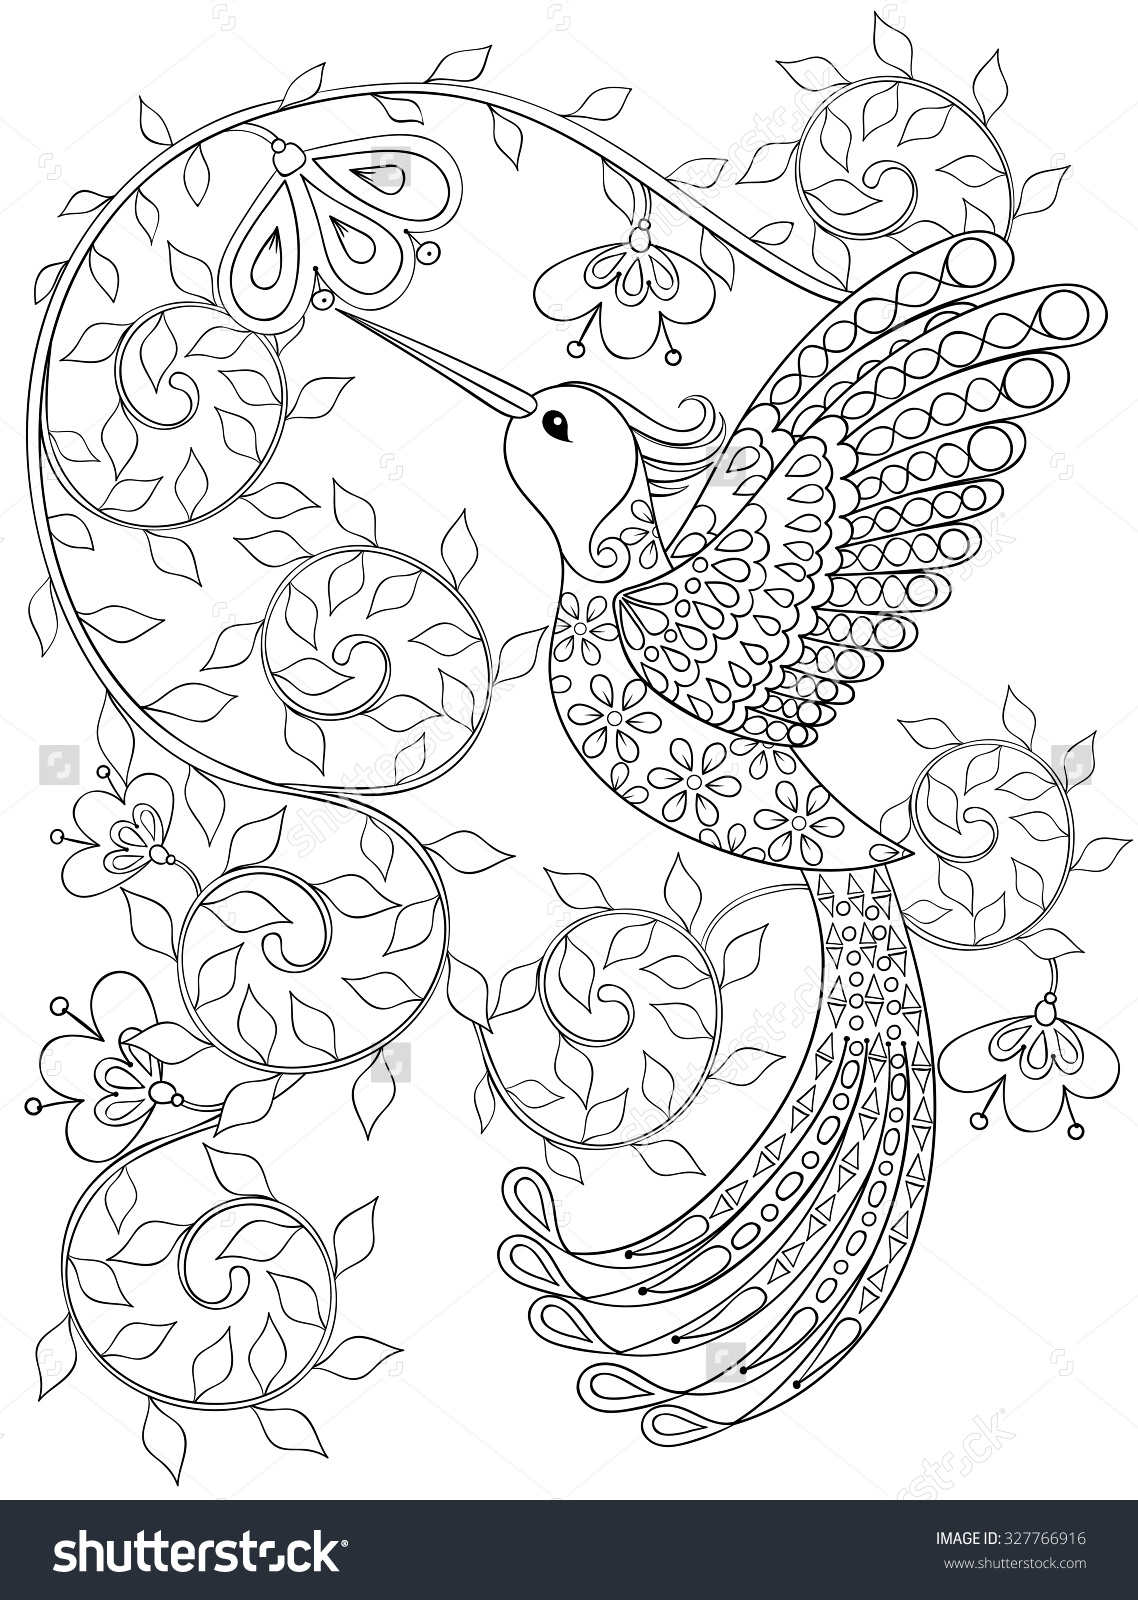 1138x1600 Bird Coloring Pages For Adults Bird Coloring Pages For Adults